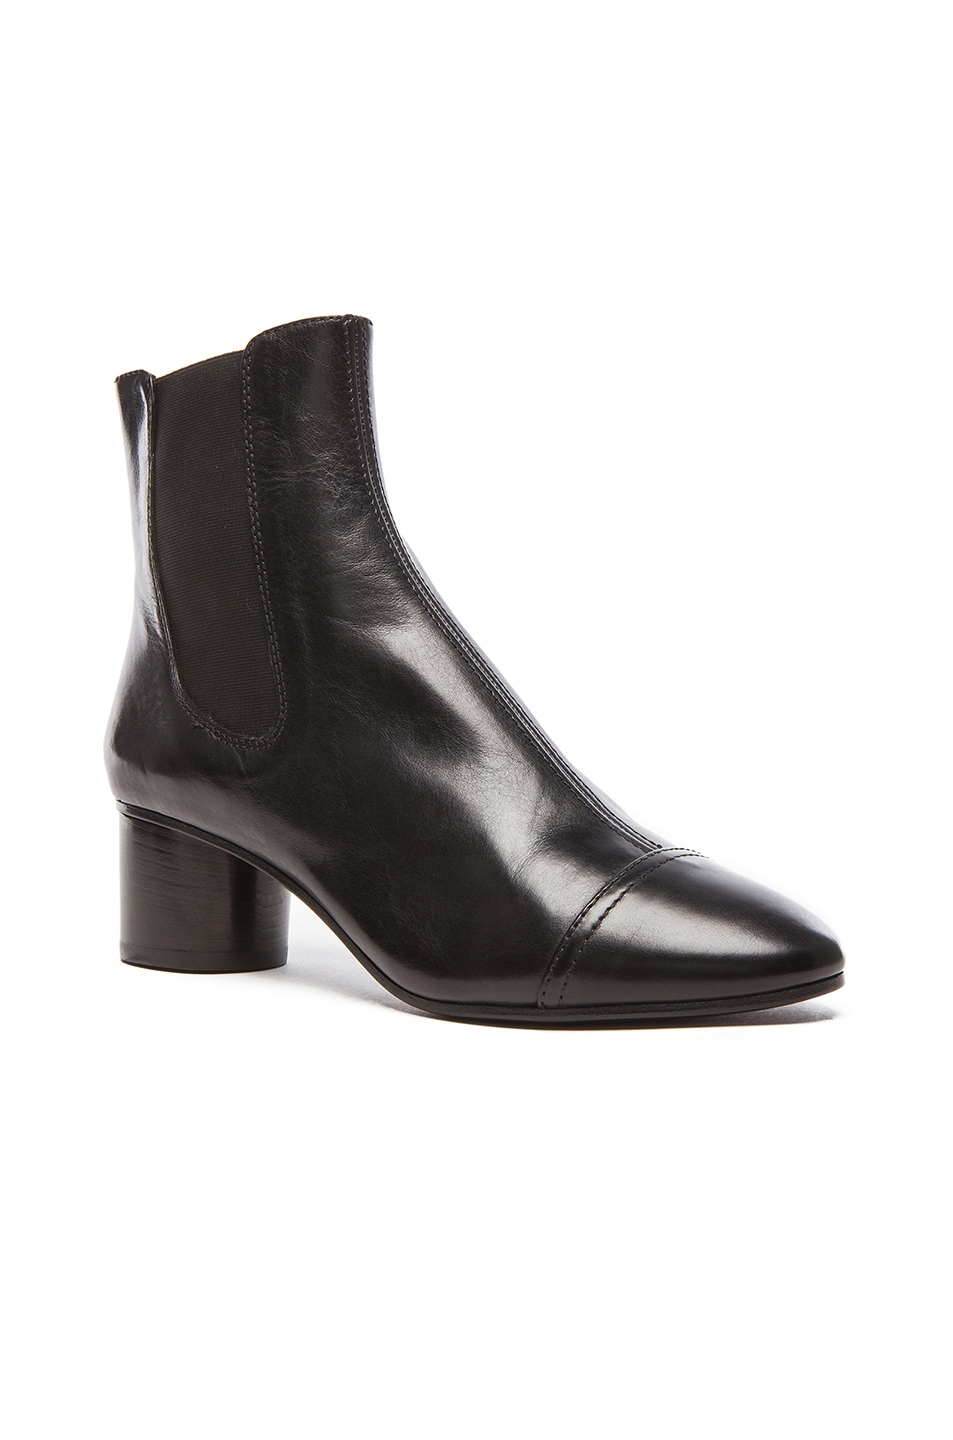 Image 2 of Isabel Marant Danae Chelsea Leather Boots in Black